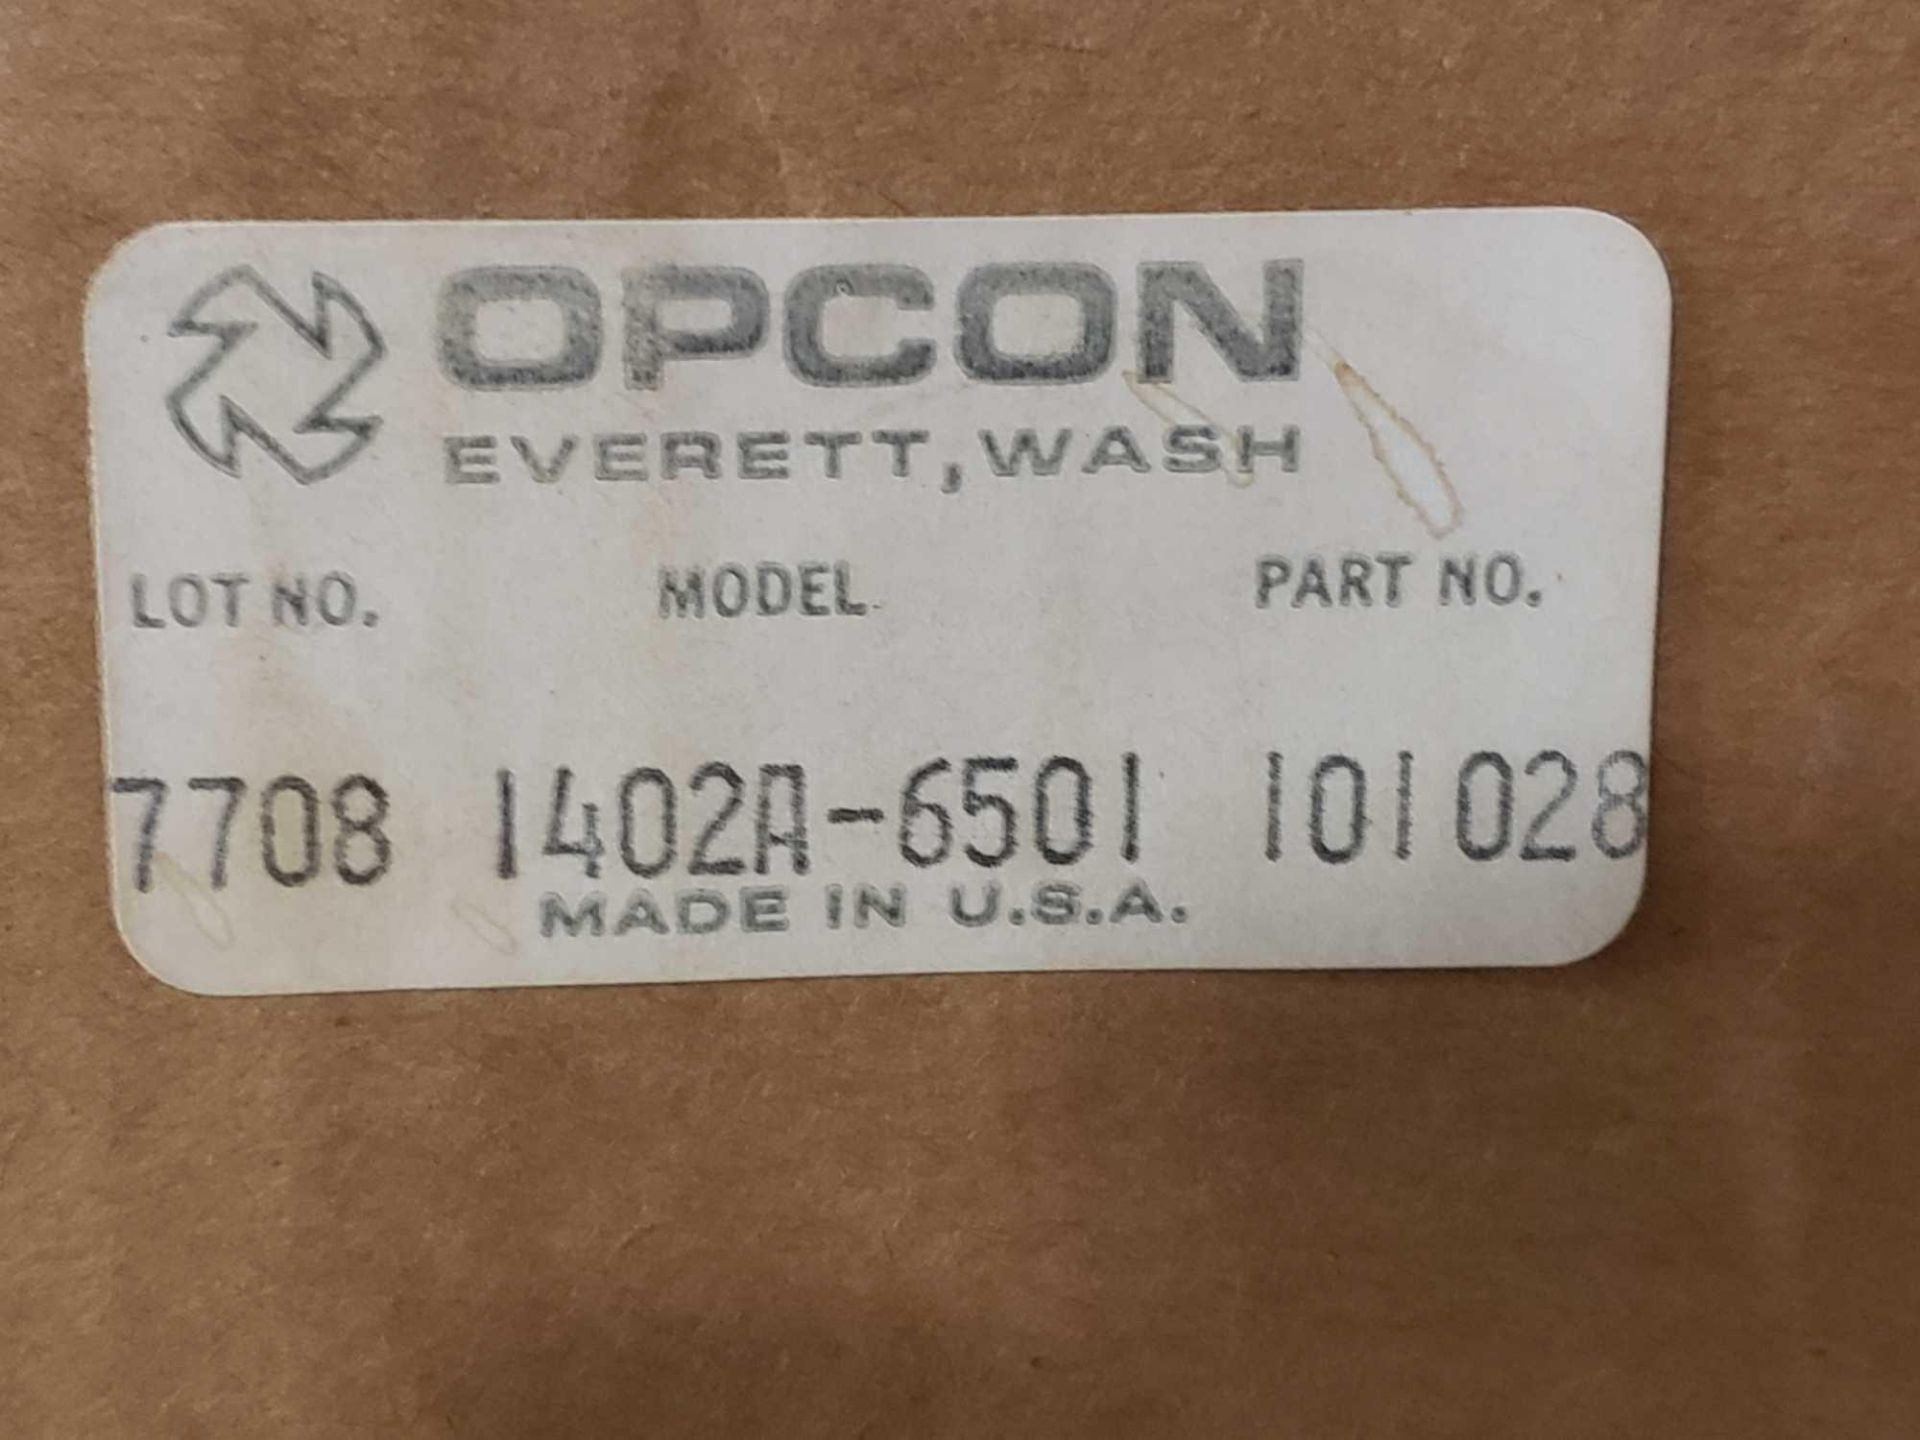 Lot 20 - Opcon model 1402A-6501, part number 101028. New in box.